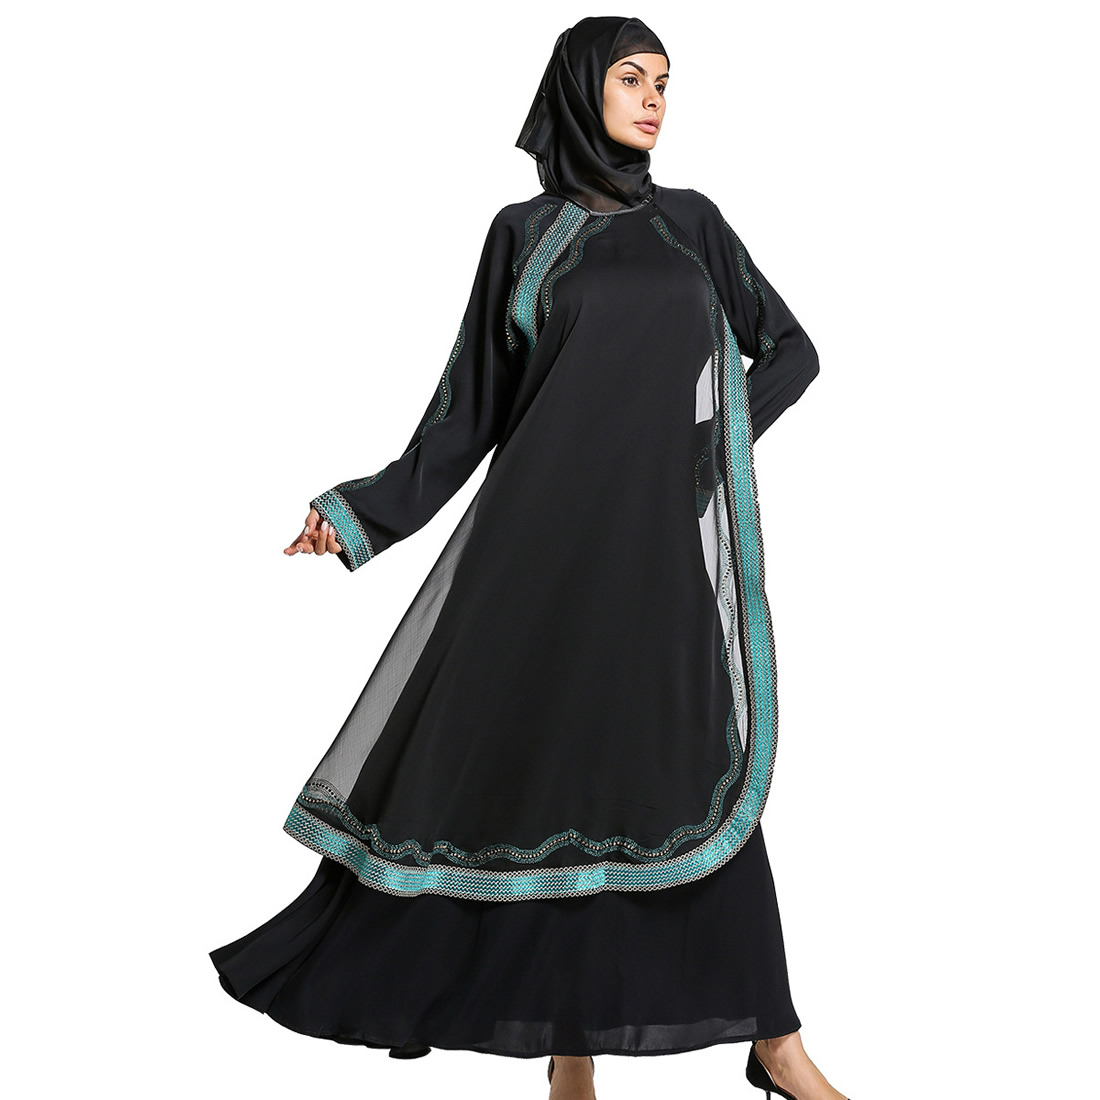 2017 Chiffon Muslim Fashion islamic abaya dresses for women Dress female saudi indonesia pakistan abaya for women robe clothing